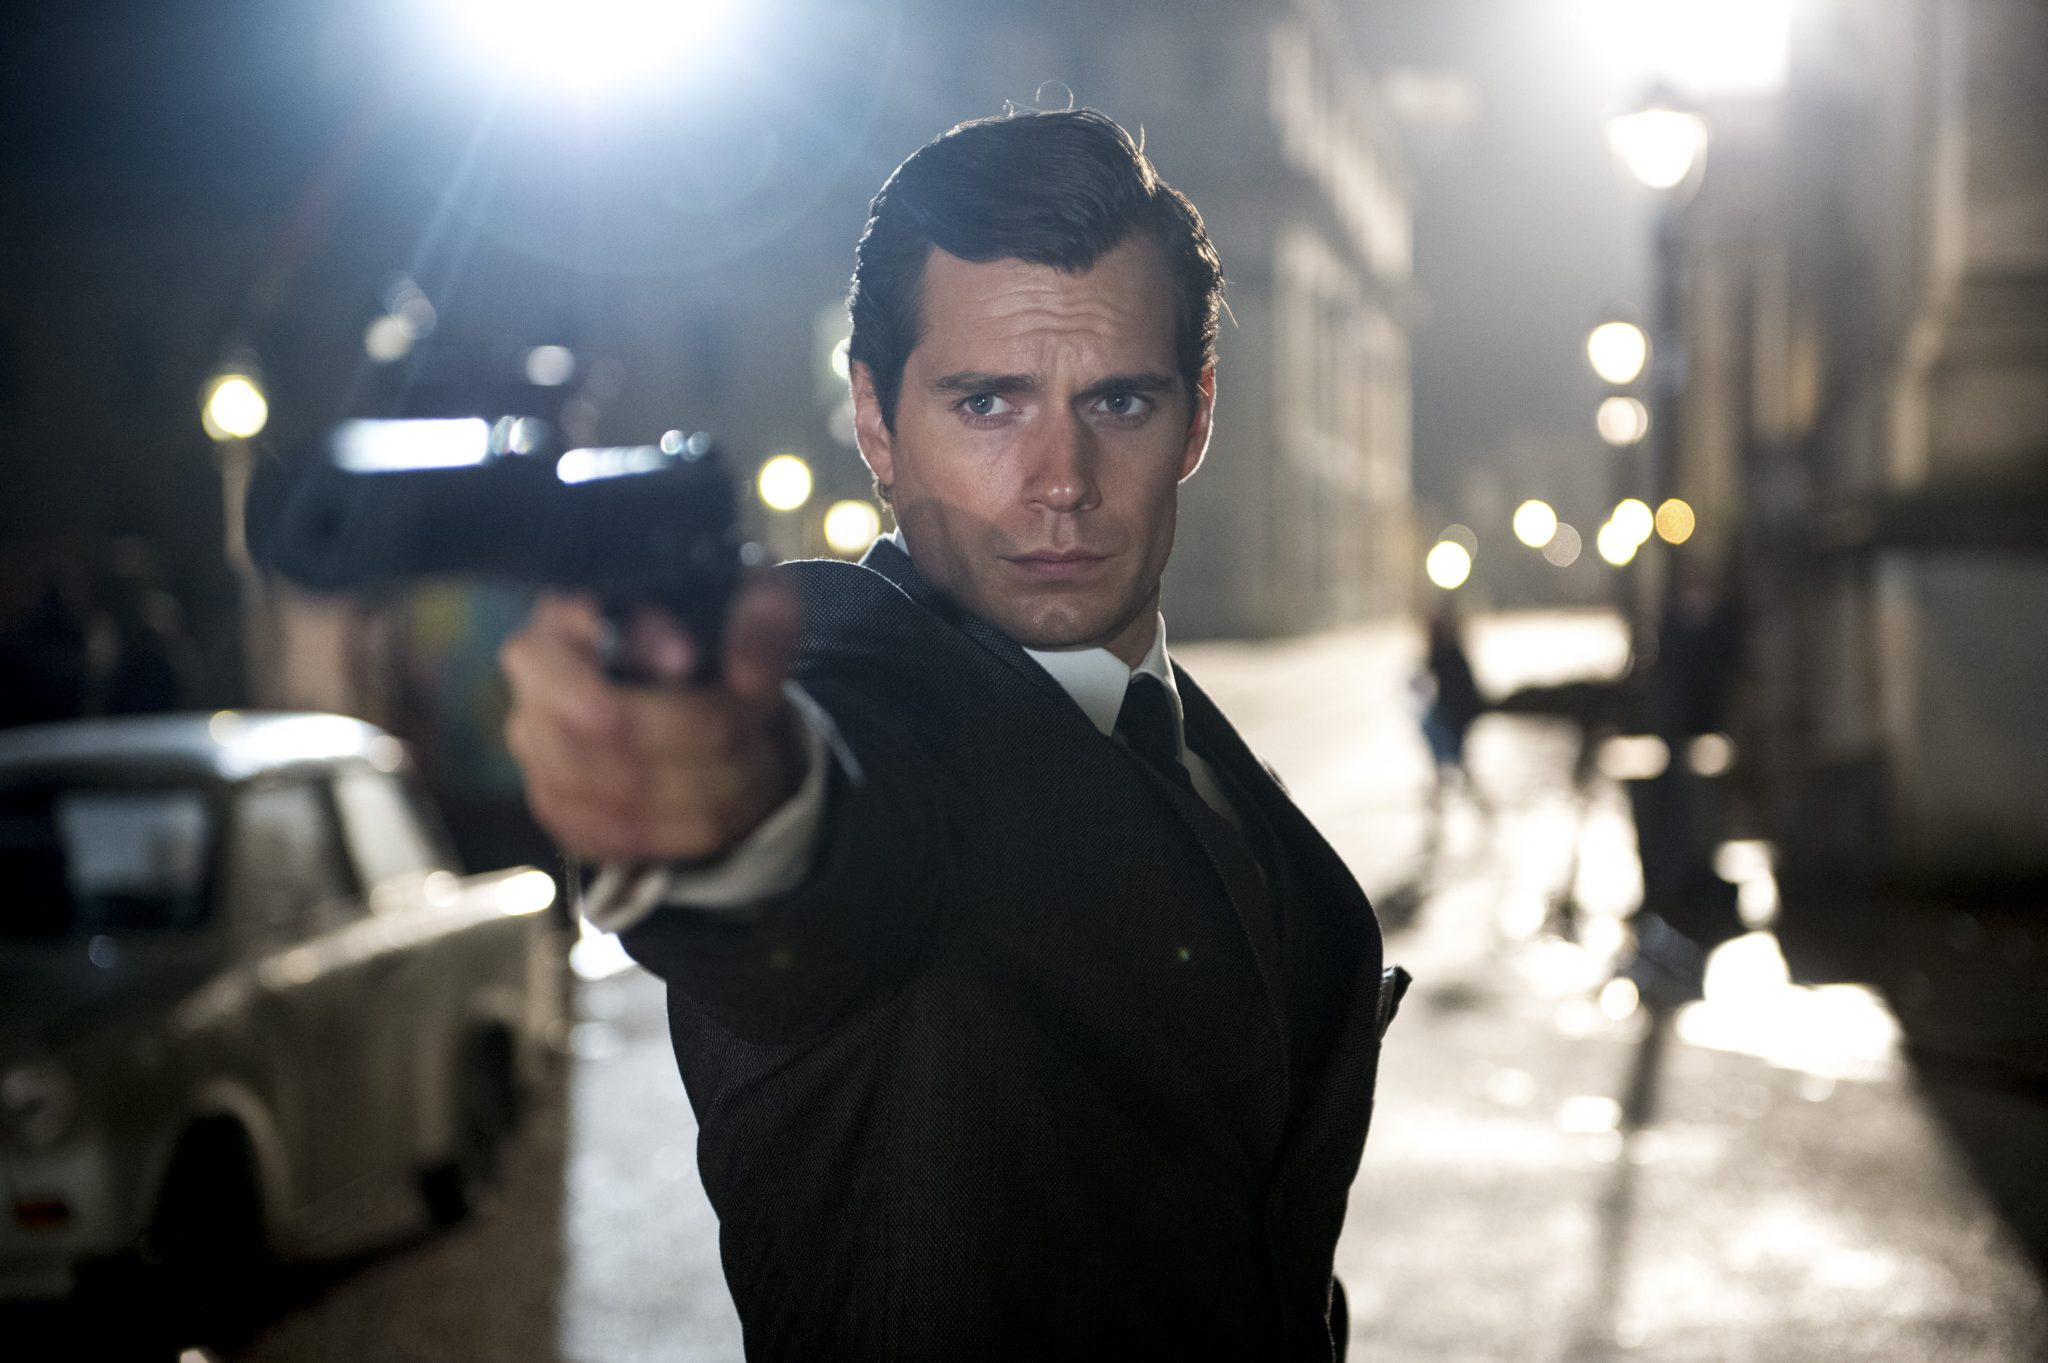 HENRY CAVILL in film The Man From U.N.C.L.E : movie directed by Guy Ritchie starring Henry Cavill, Armie Hammer, Hugh Grant; Spy; Espionnage; Action; film; cinema; movie; american; Agents très spéciaux - Code U.N.C.L.E; 2015 NOTE: this is a PR photo. SUNSETBOX does not claim any Copyright or License in the attached material. Fees charged by SUNSETBOX are for SUNSETBOX's services only, and do not, nor are they intended to, convey to the user any ownership of Copyright or License in the material. By publishing this material, the user expressly agrees to indemnify and to hold SUNSETBOX harmless from any claims, demands, or causes of action arising out of or connected in any way with user's publication of the material